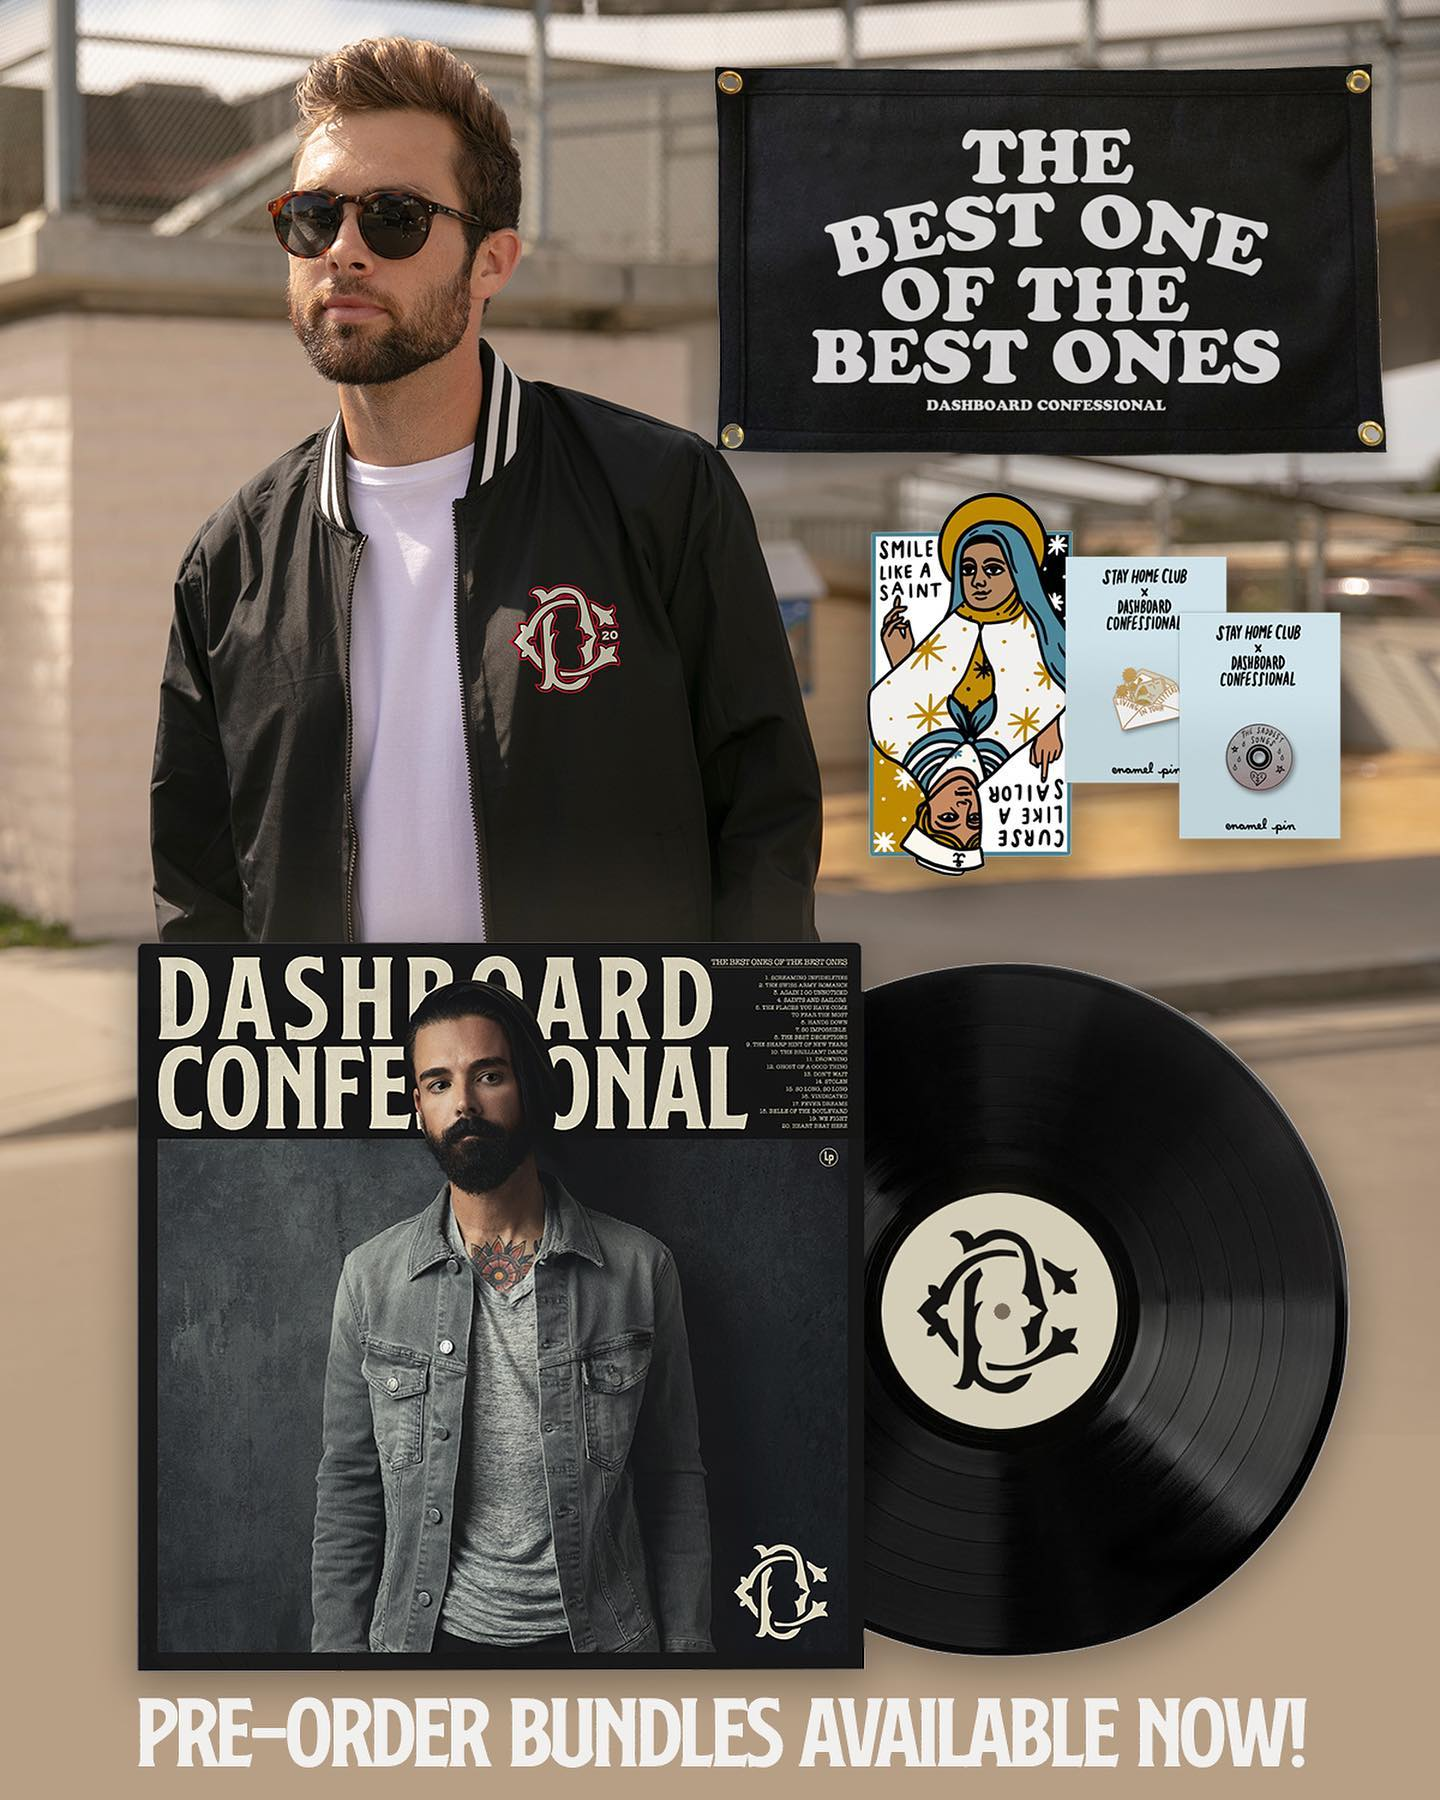 Pre-order The Best Ones Of The Best Ones